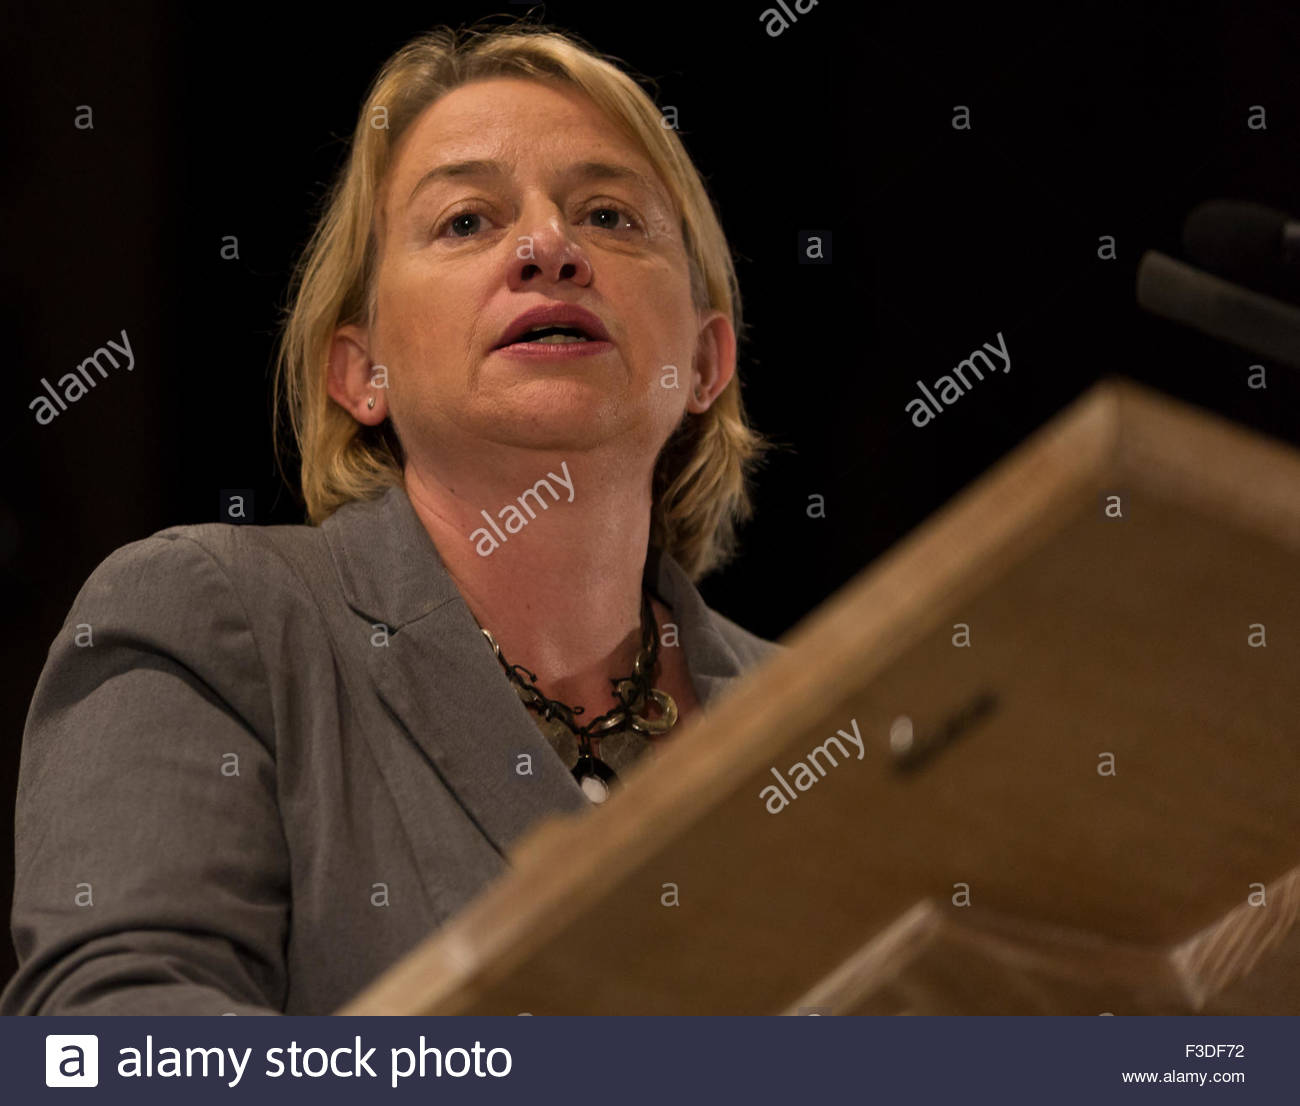 Manchester, UK. 5th October, 2015. Manchester, 5 ocotber 2915. Natalie bennet speaking at People's post meeting - Stock Image